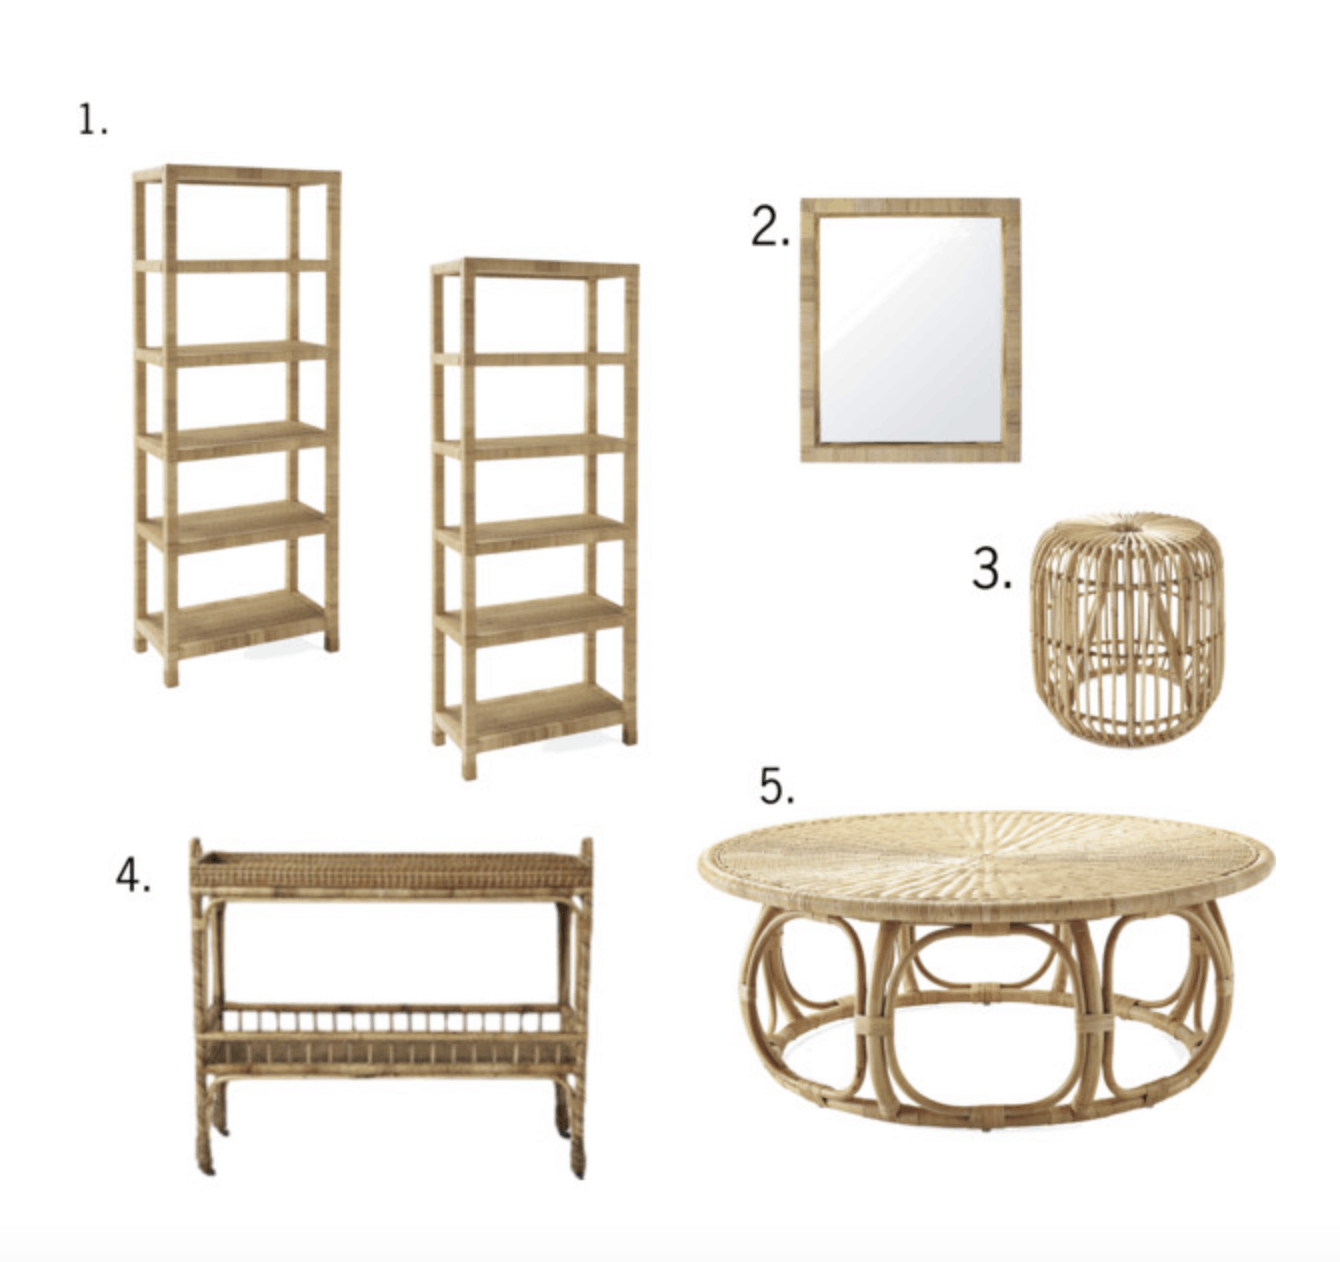 Wicker-Rattan-Furniture-Serena-and-Lily